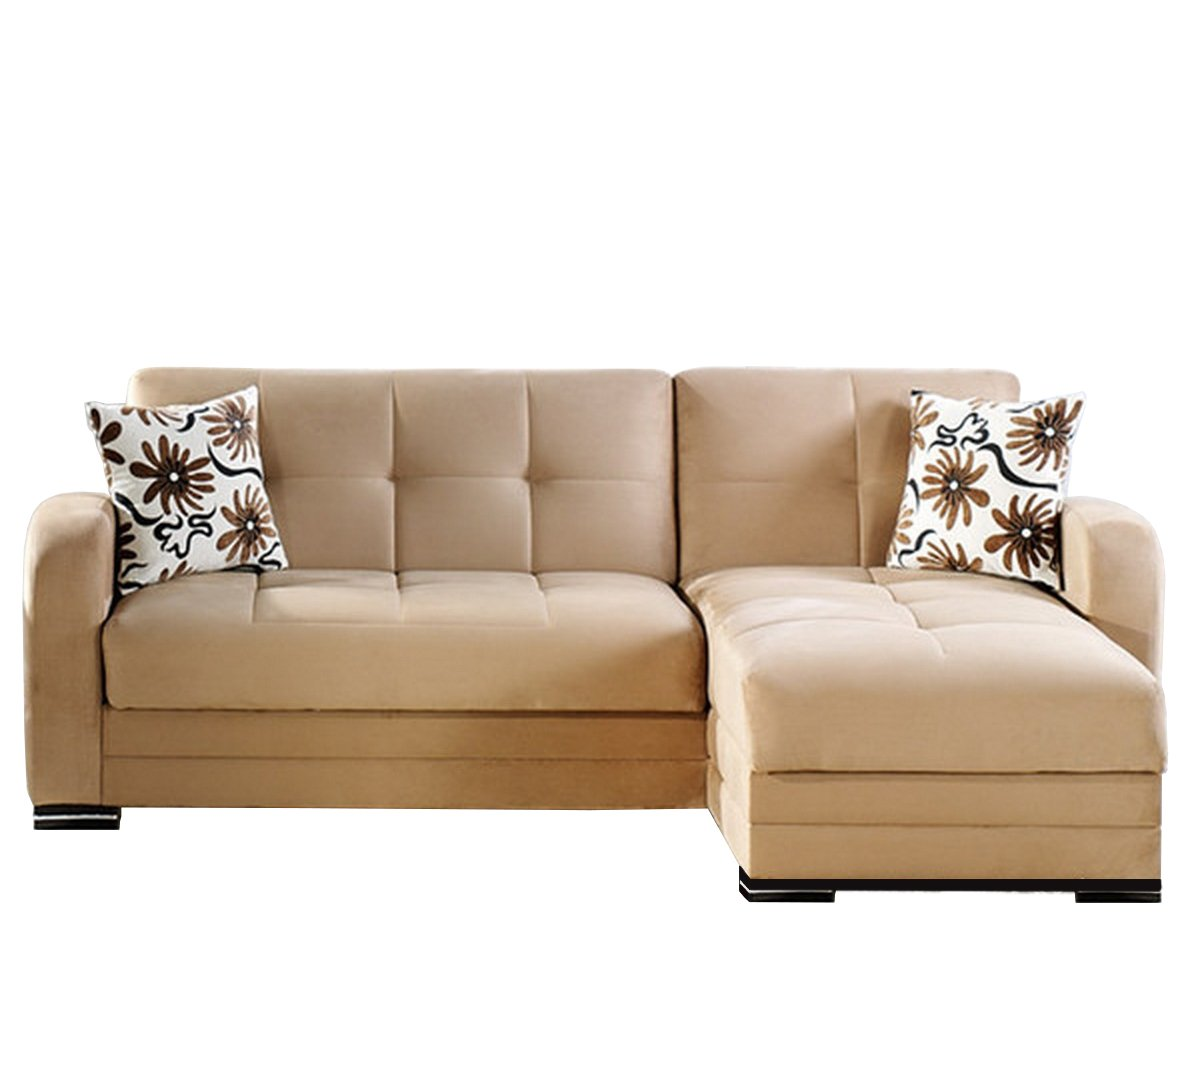 Kubo Rainbow Dark Beige Sectional Sofa